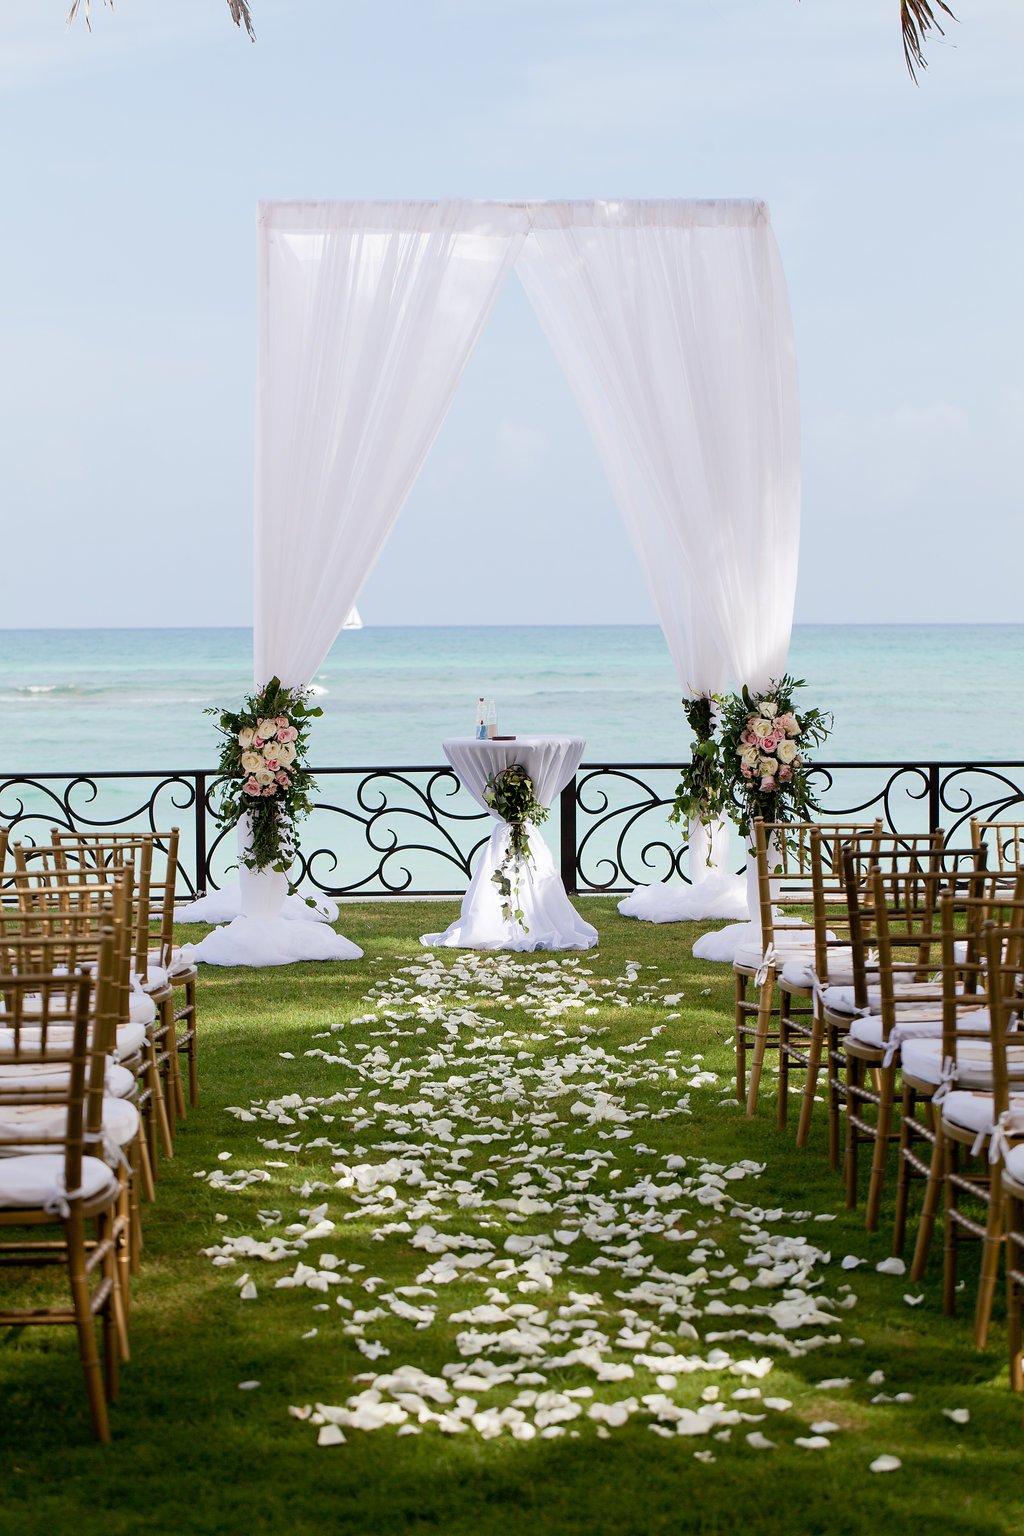 cancun-wedding-venue-04.jpg